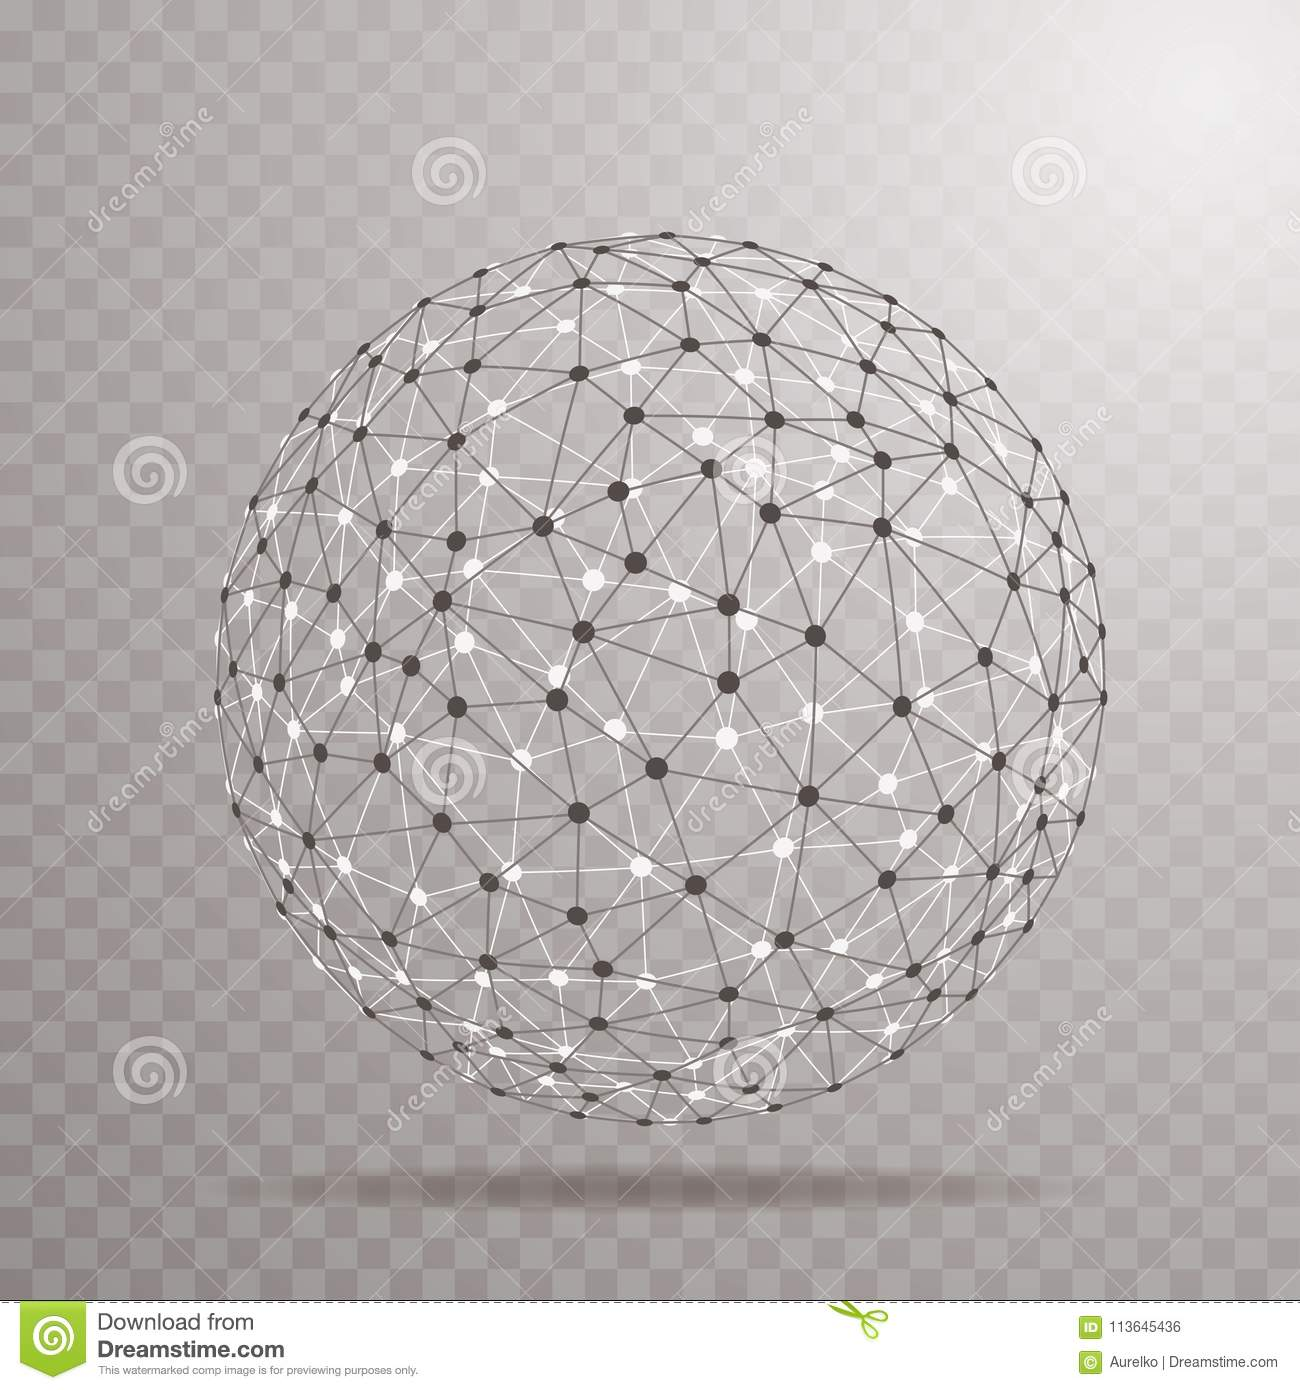 Wire ball trans stock vector. Illustration of networking - 113645436